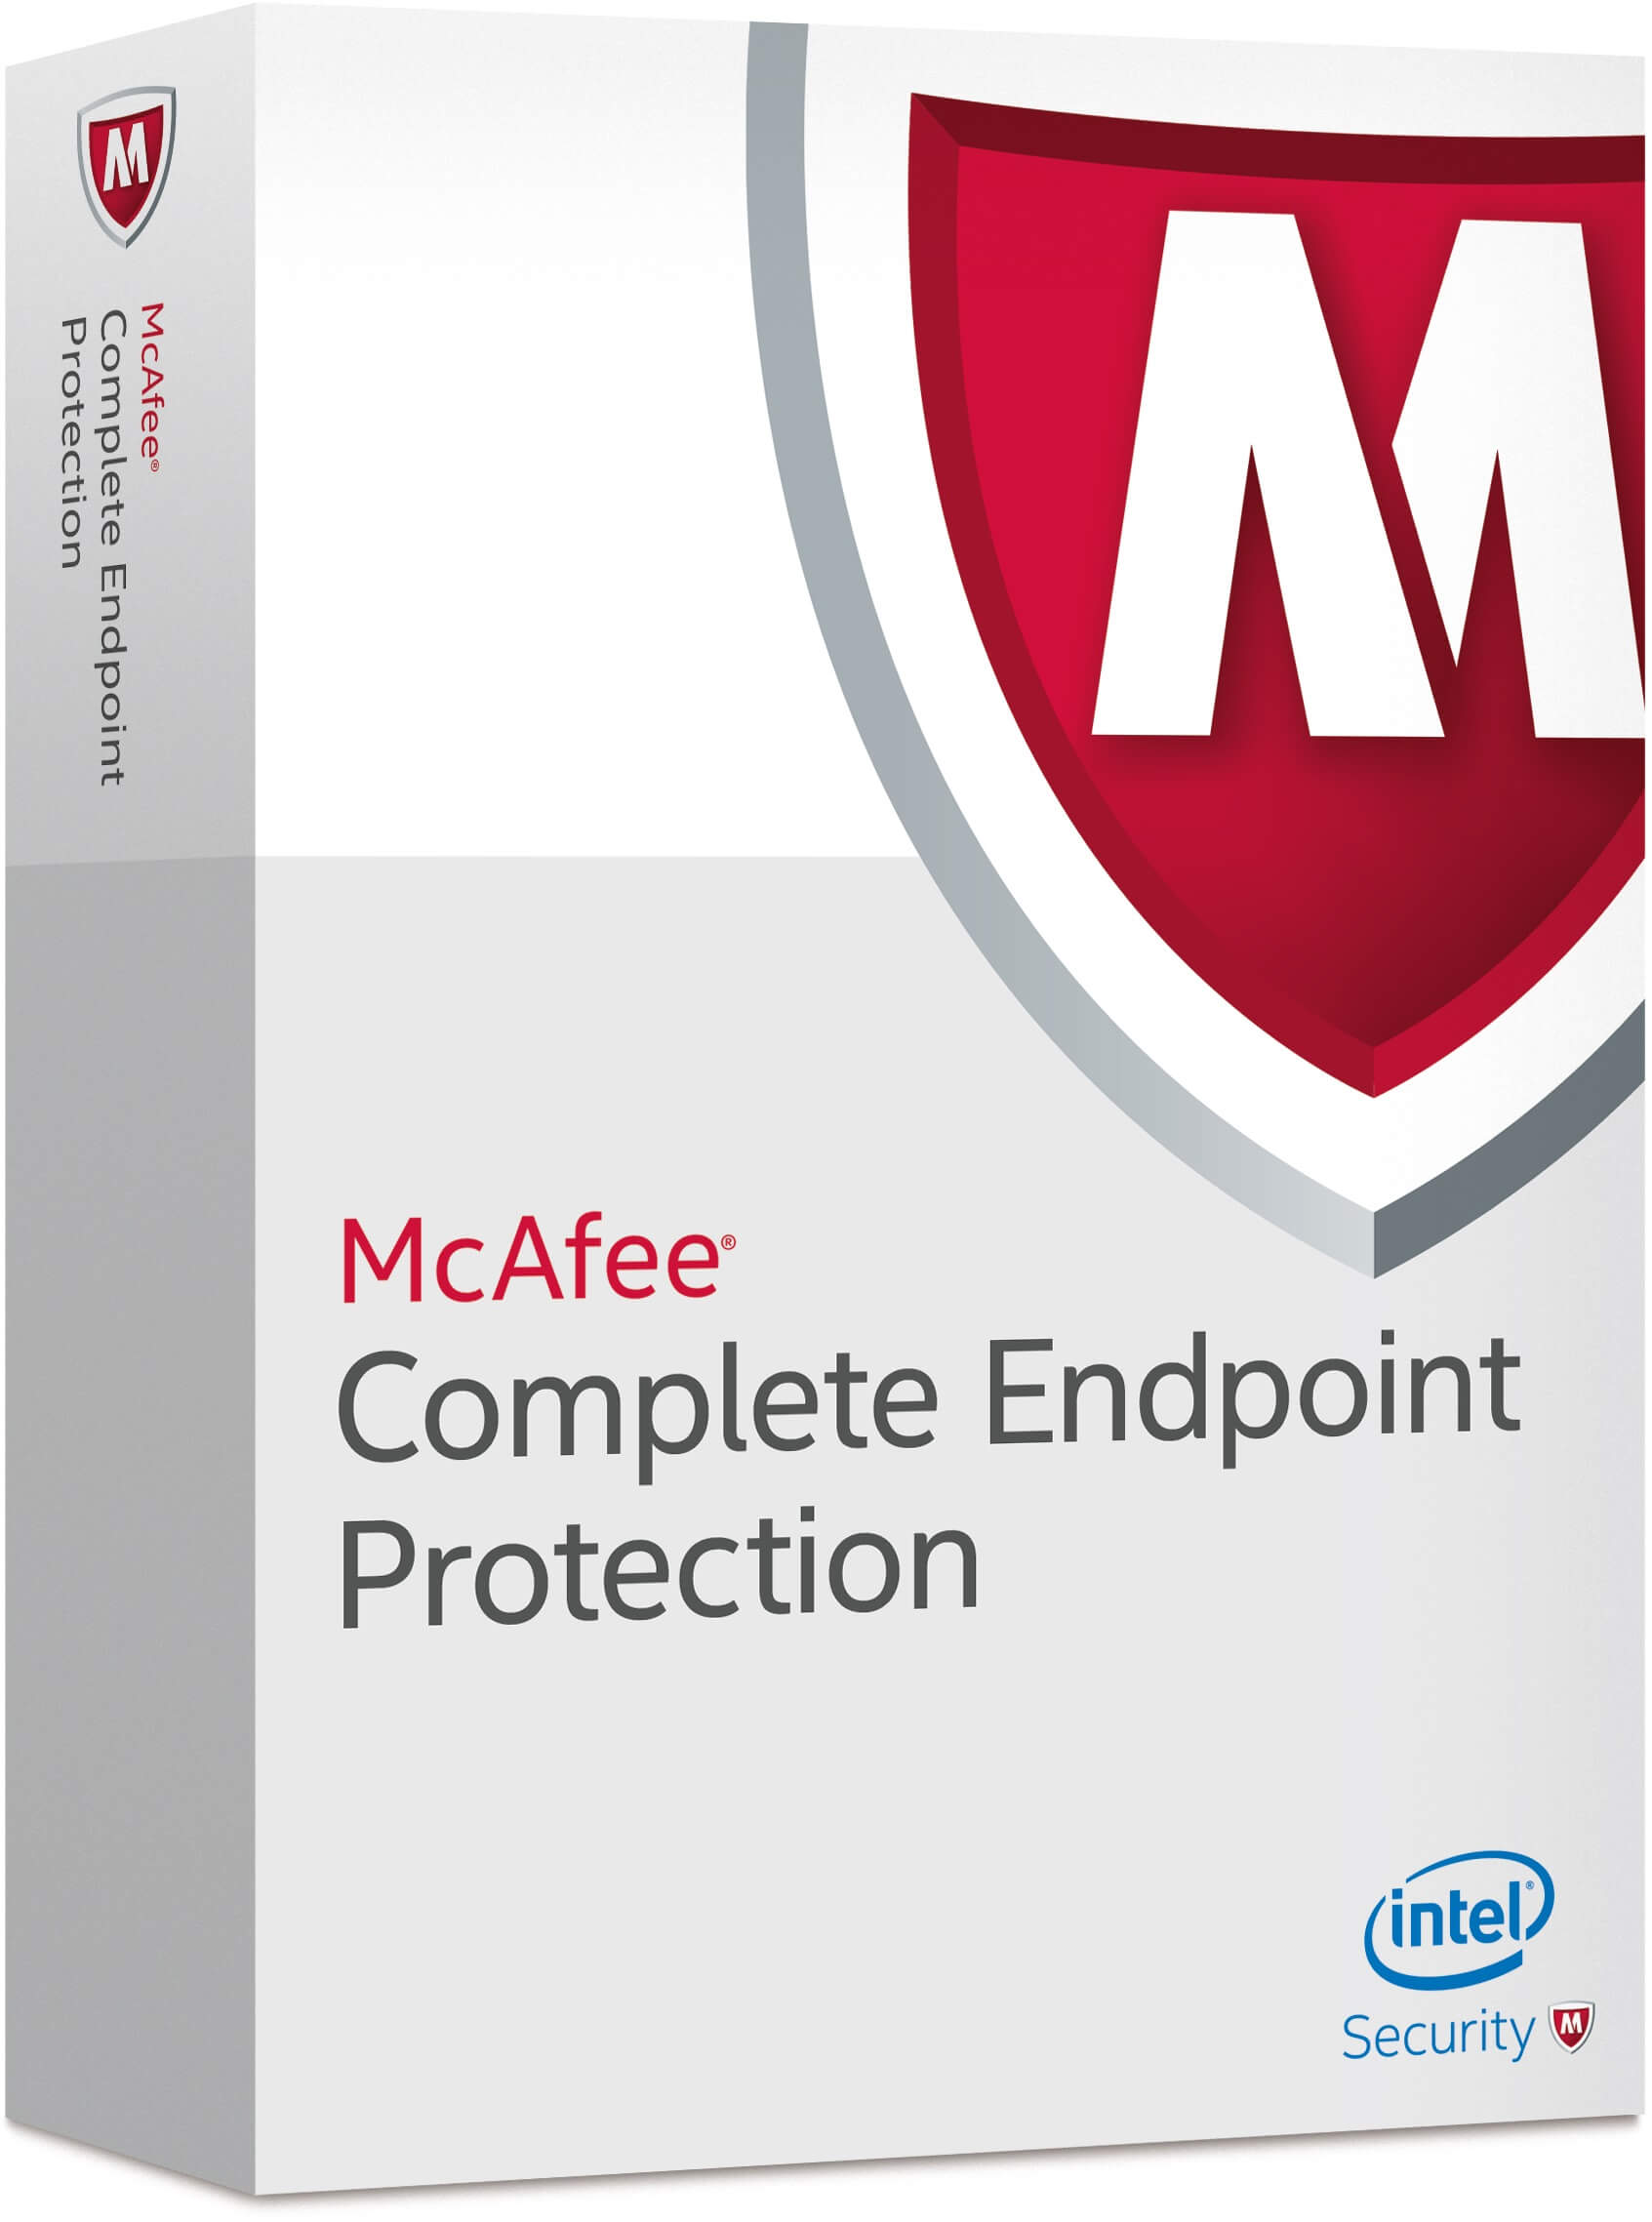 McAfee Complete EndPoint Protection - Business inkl. 1 Jahr Gold Support Win, Multilingual (Lizenzstaffel 11-25 User)